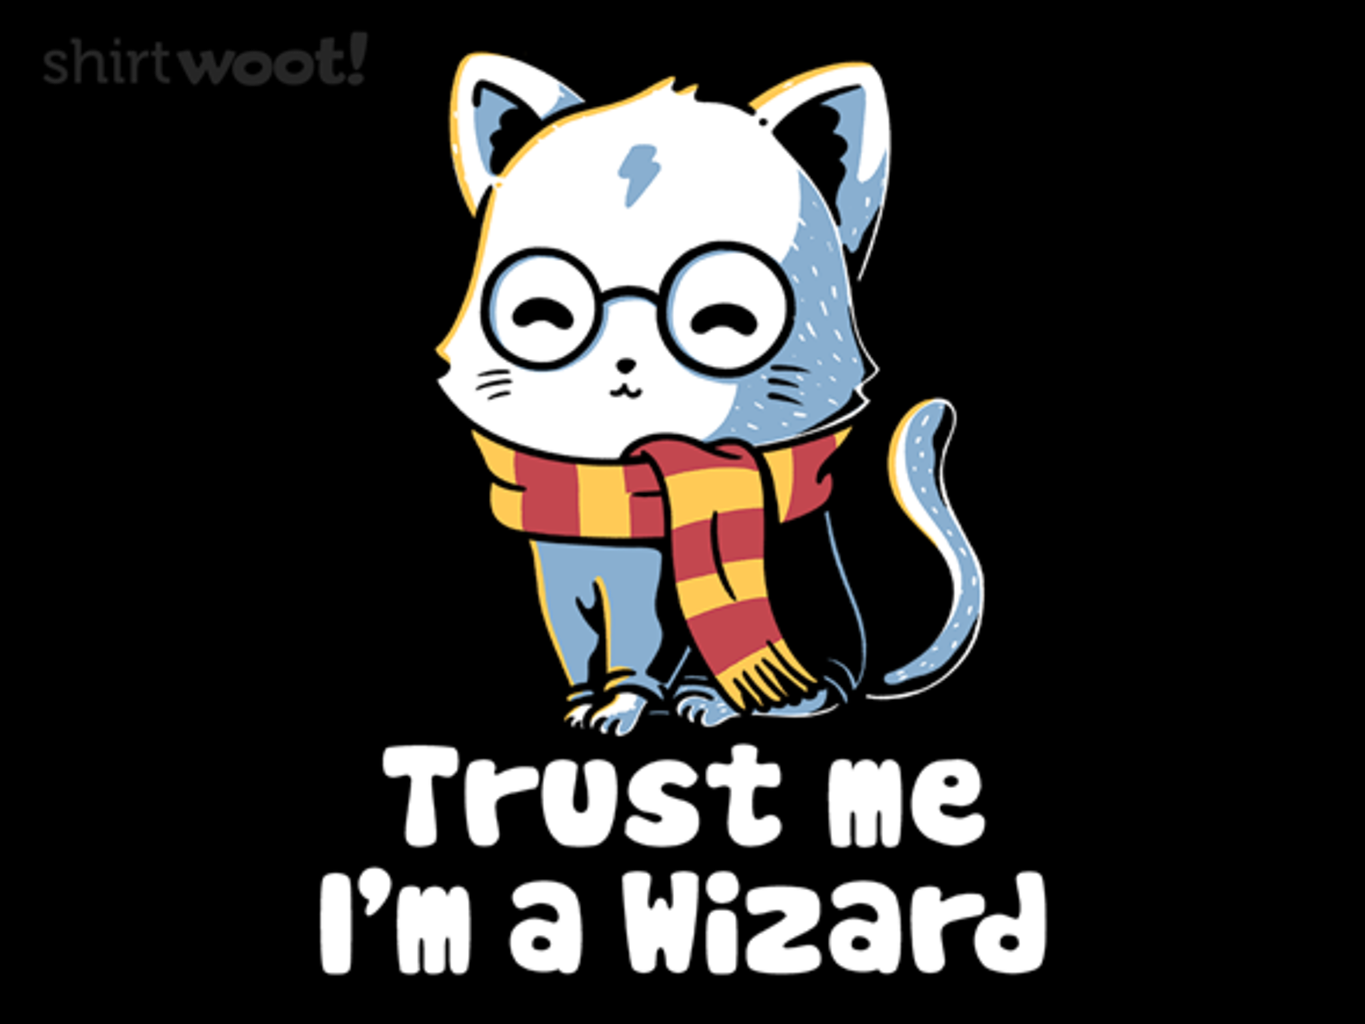 Woot!: Trust Me, I'm a Wizard